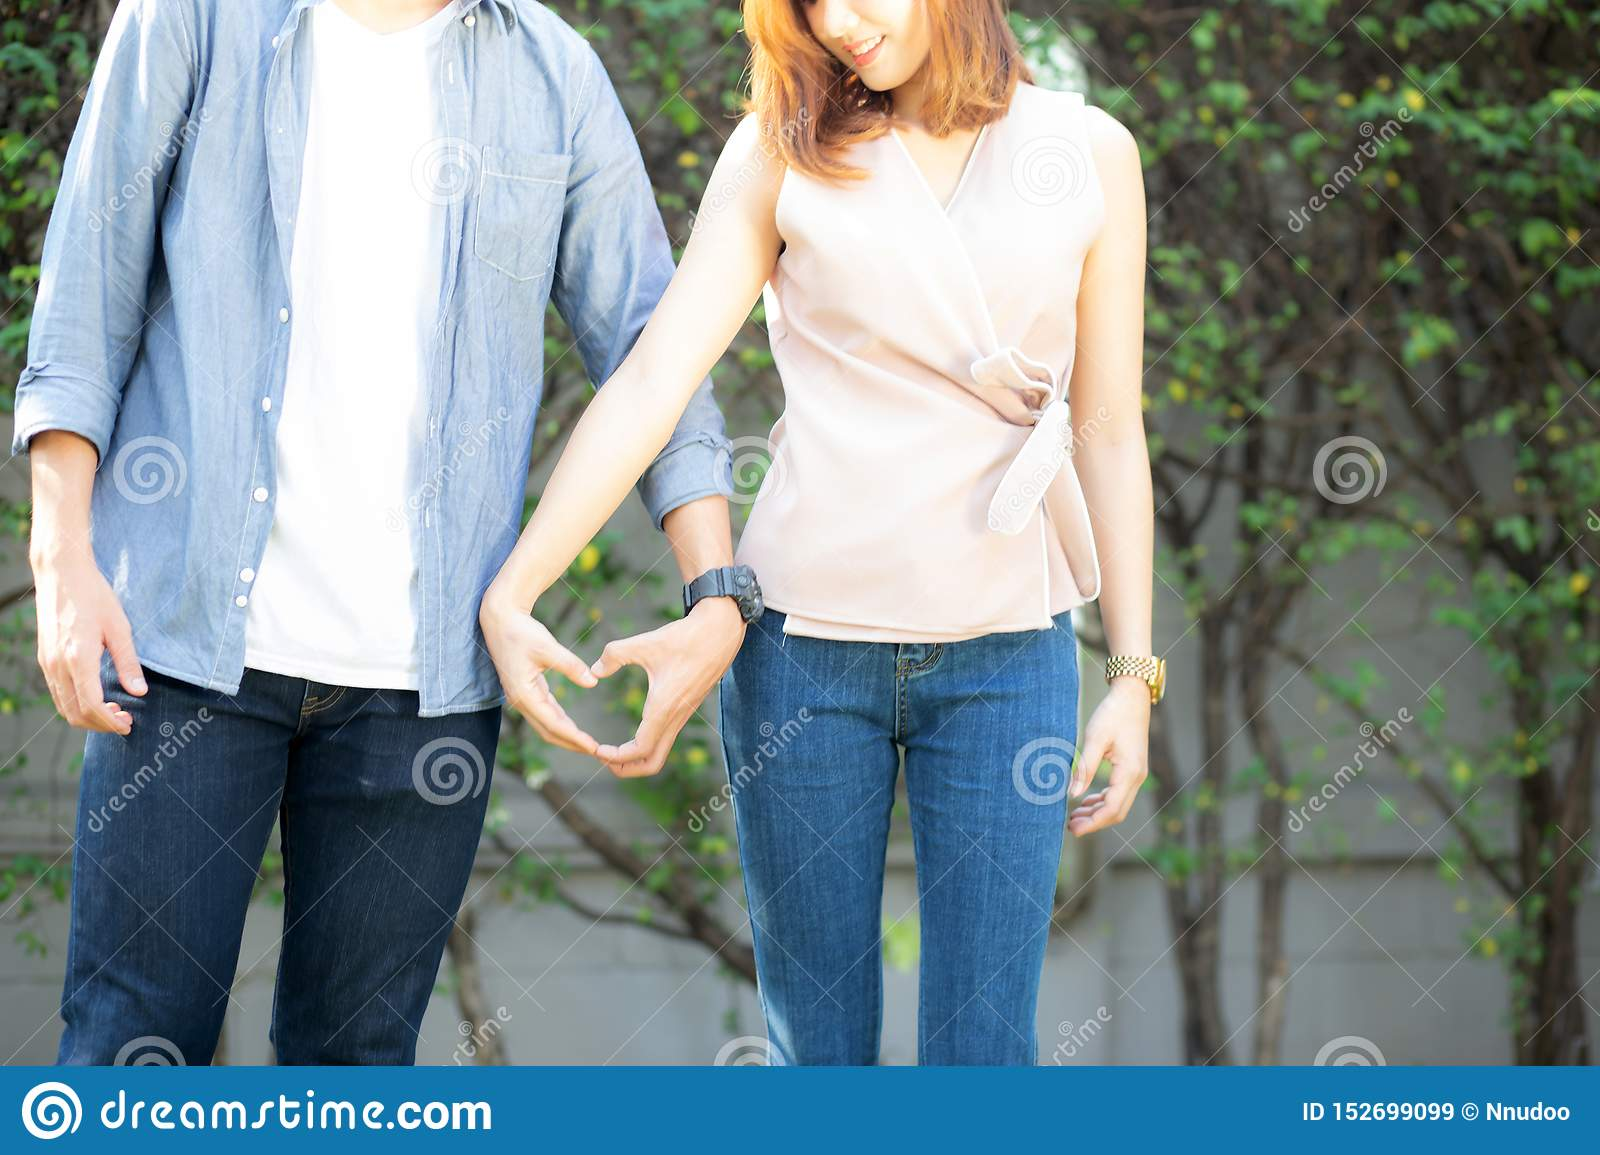 Closeup of happy couple fun making gesture heart shape with hand outdoor together